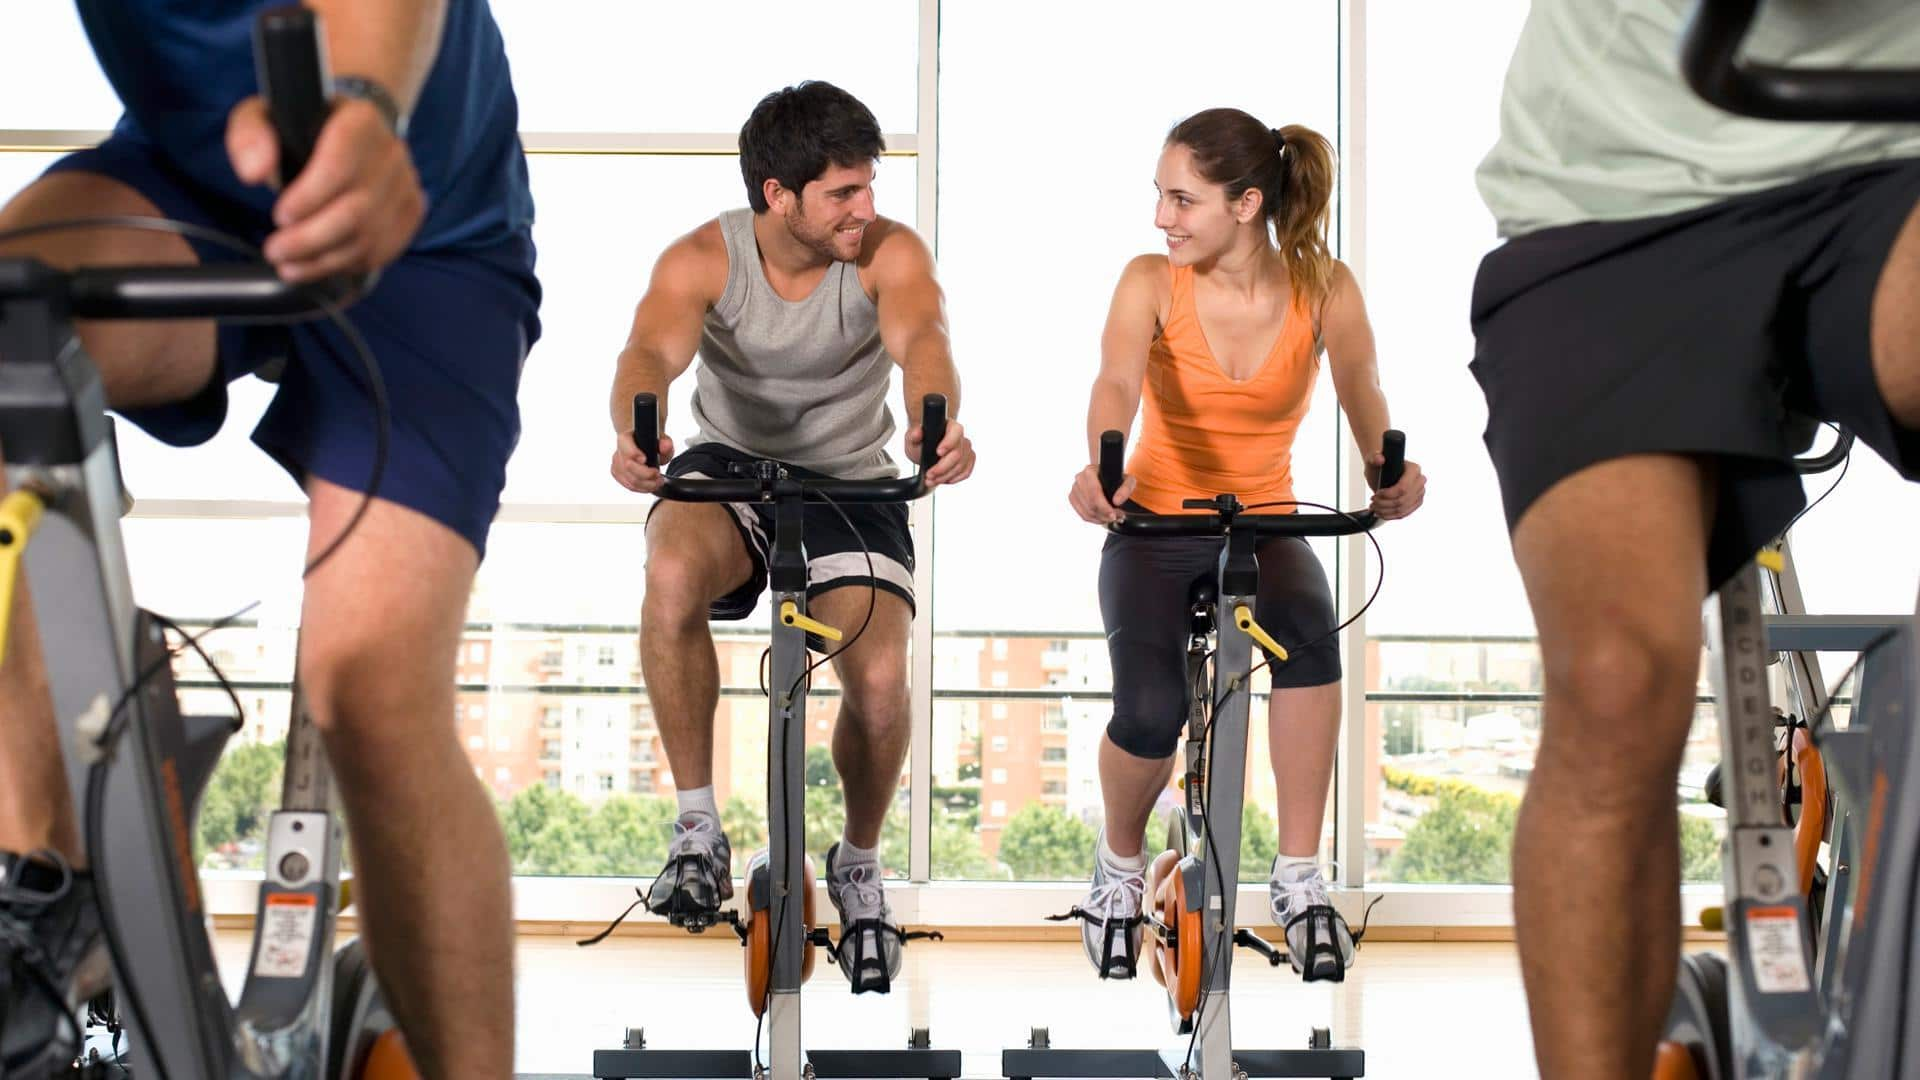 The Different Styles of Fitness Galleries